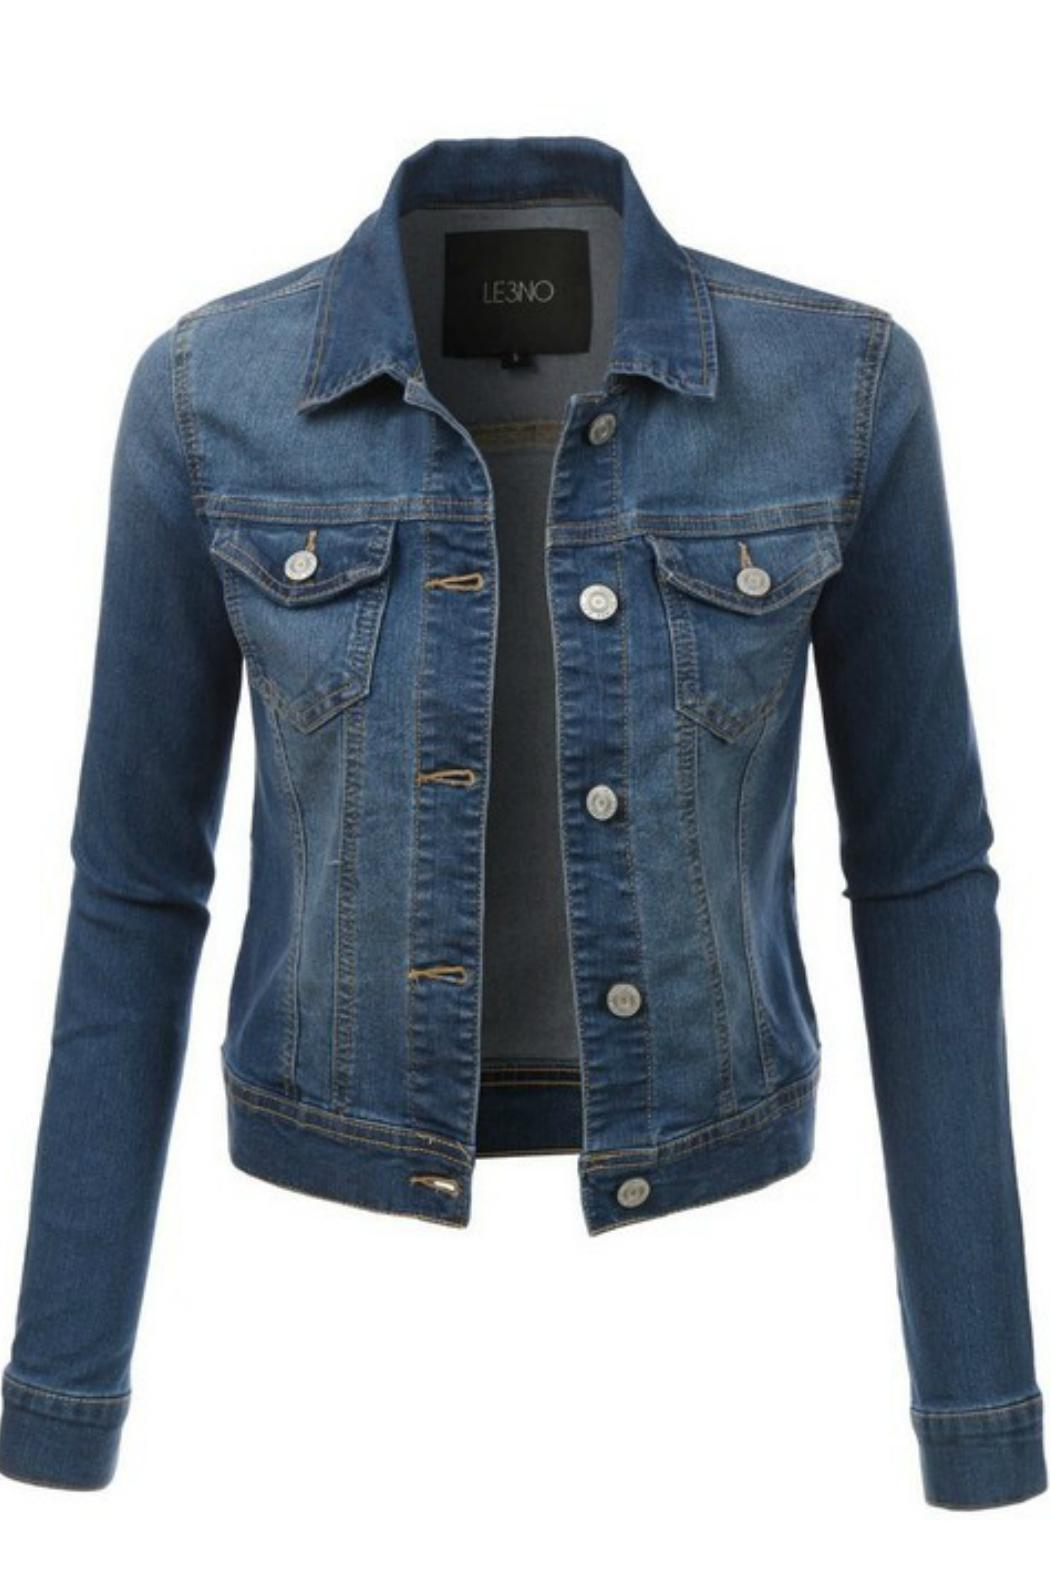 Le3no Short Jean Jacket From North Carolina By Lucky Lucy